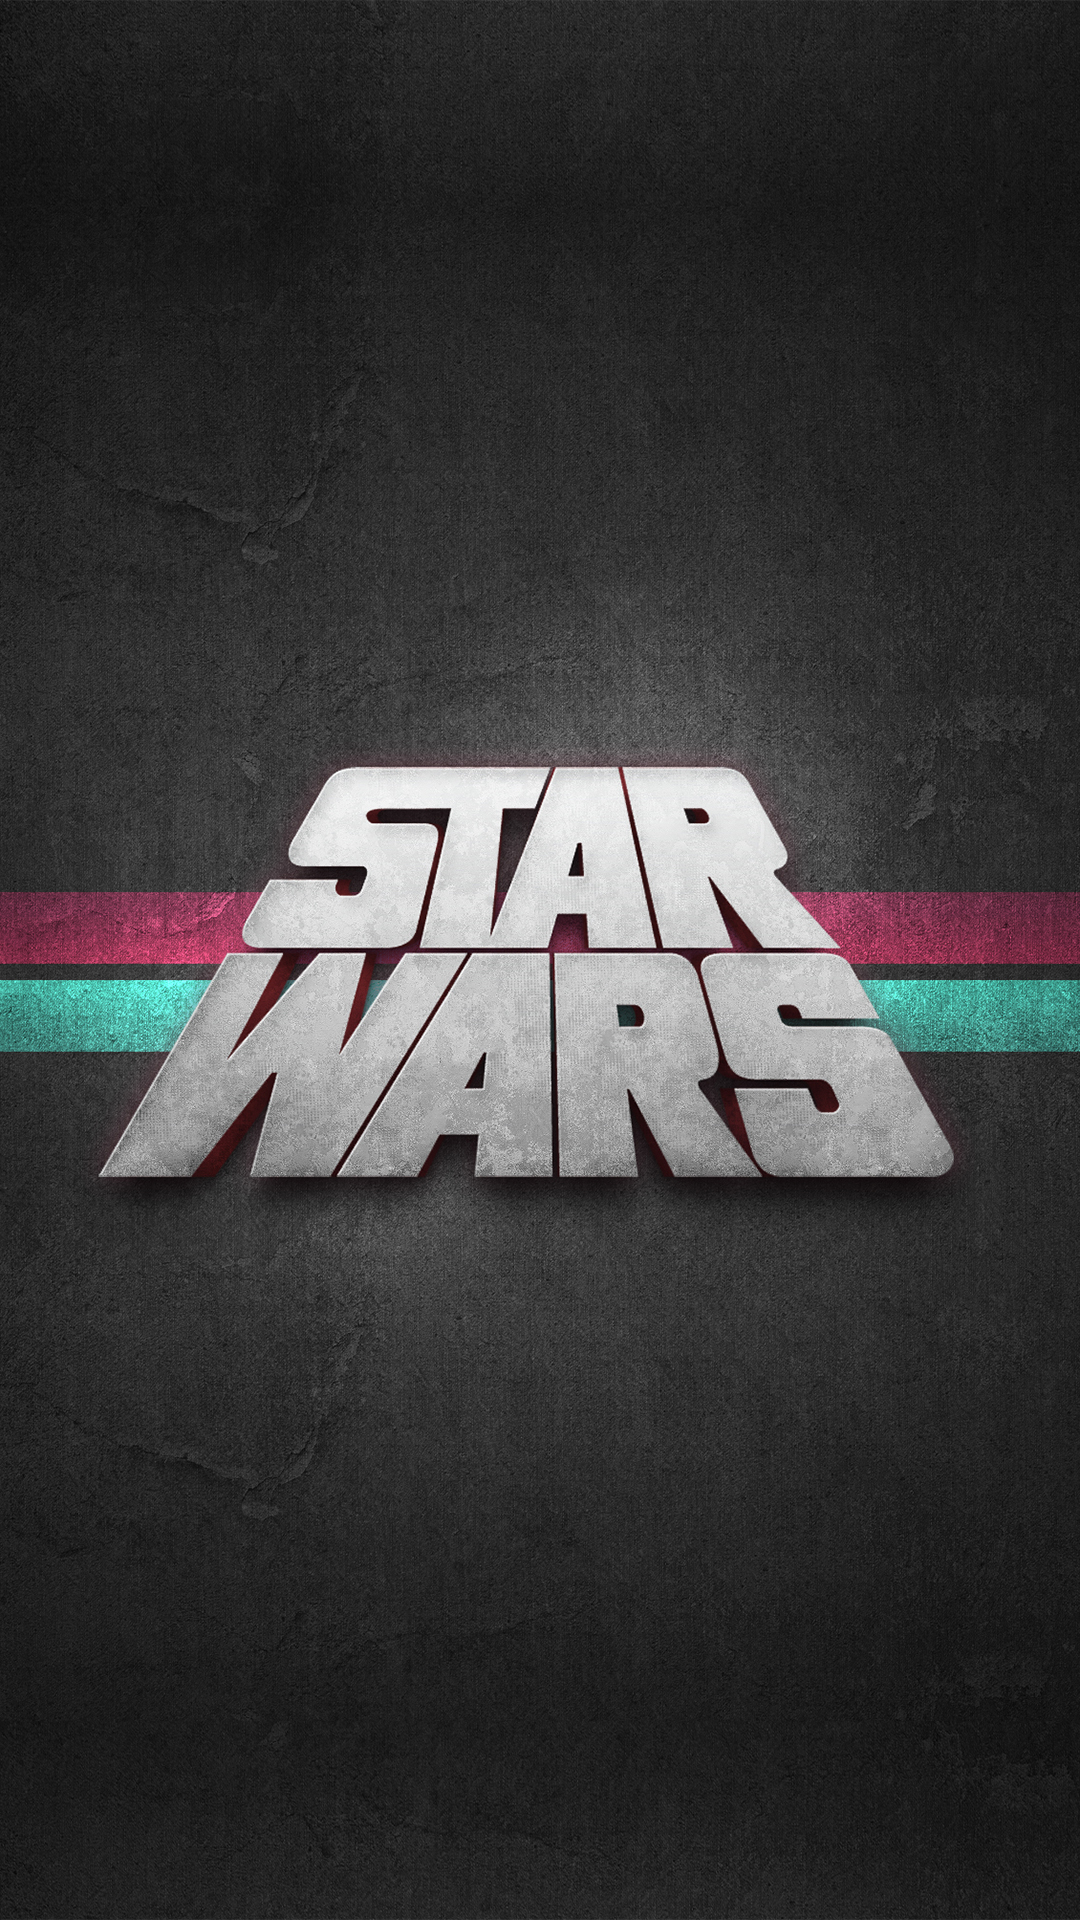 Best Star Wars Wallpaper For Android 1080x1920 Wallpaper Teahub Io